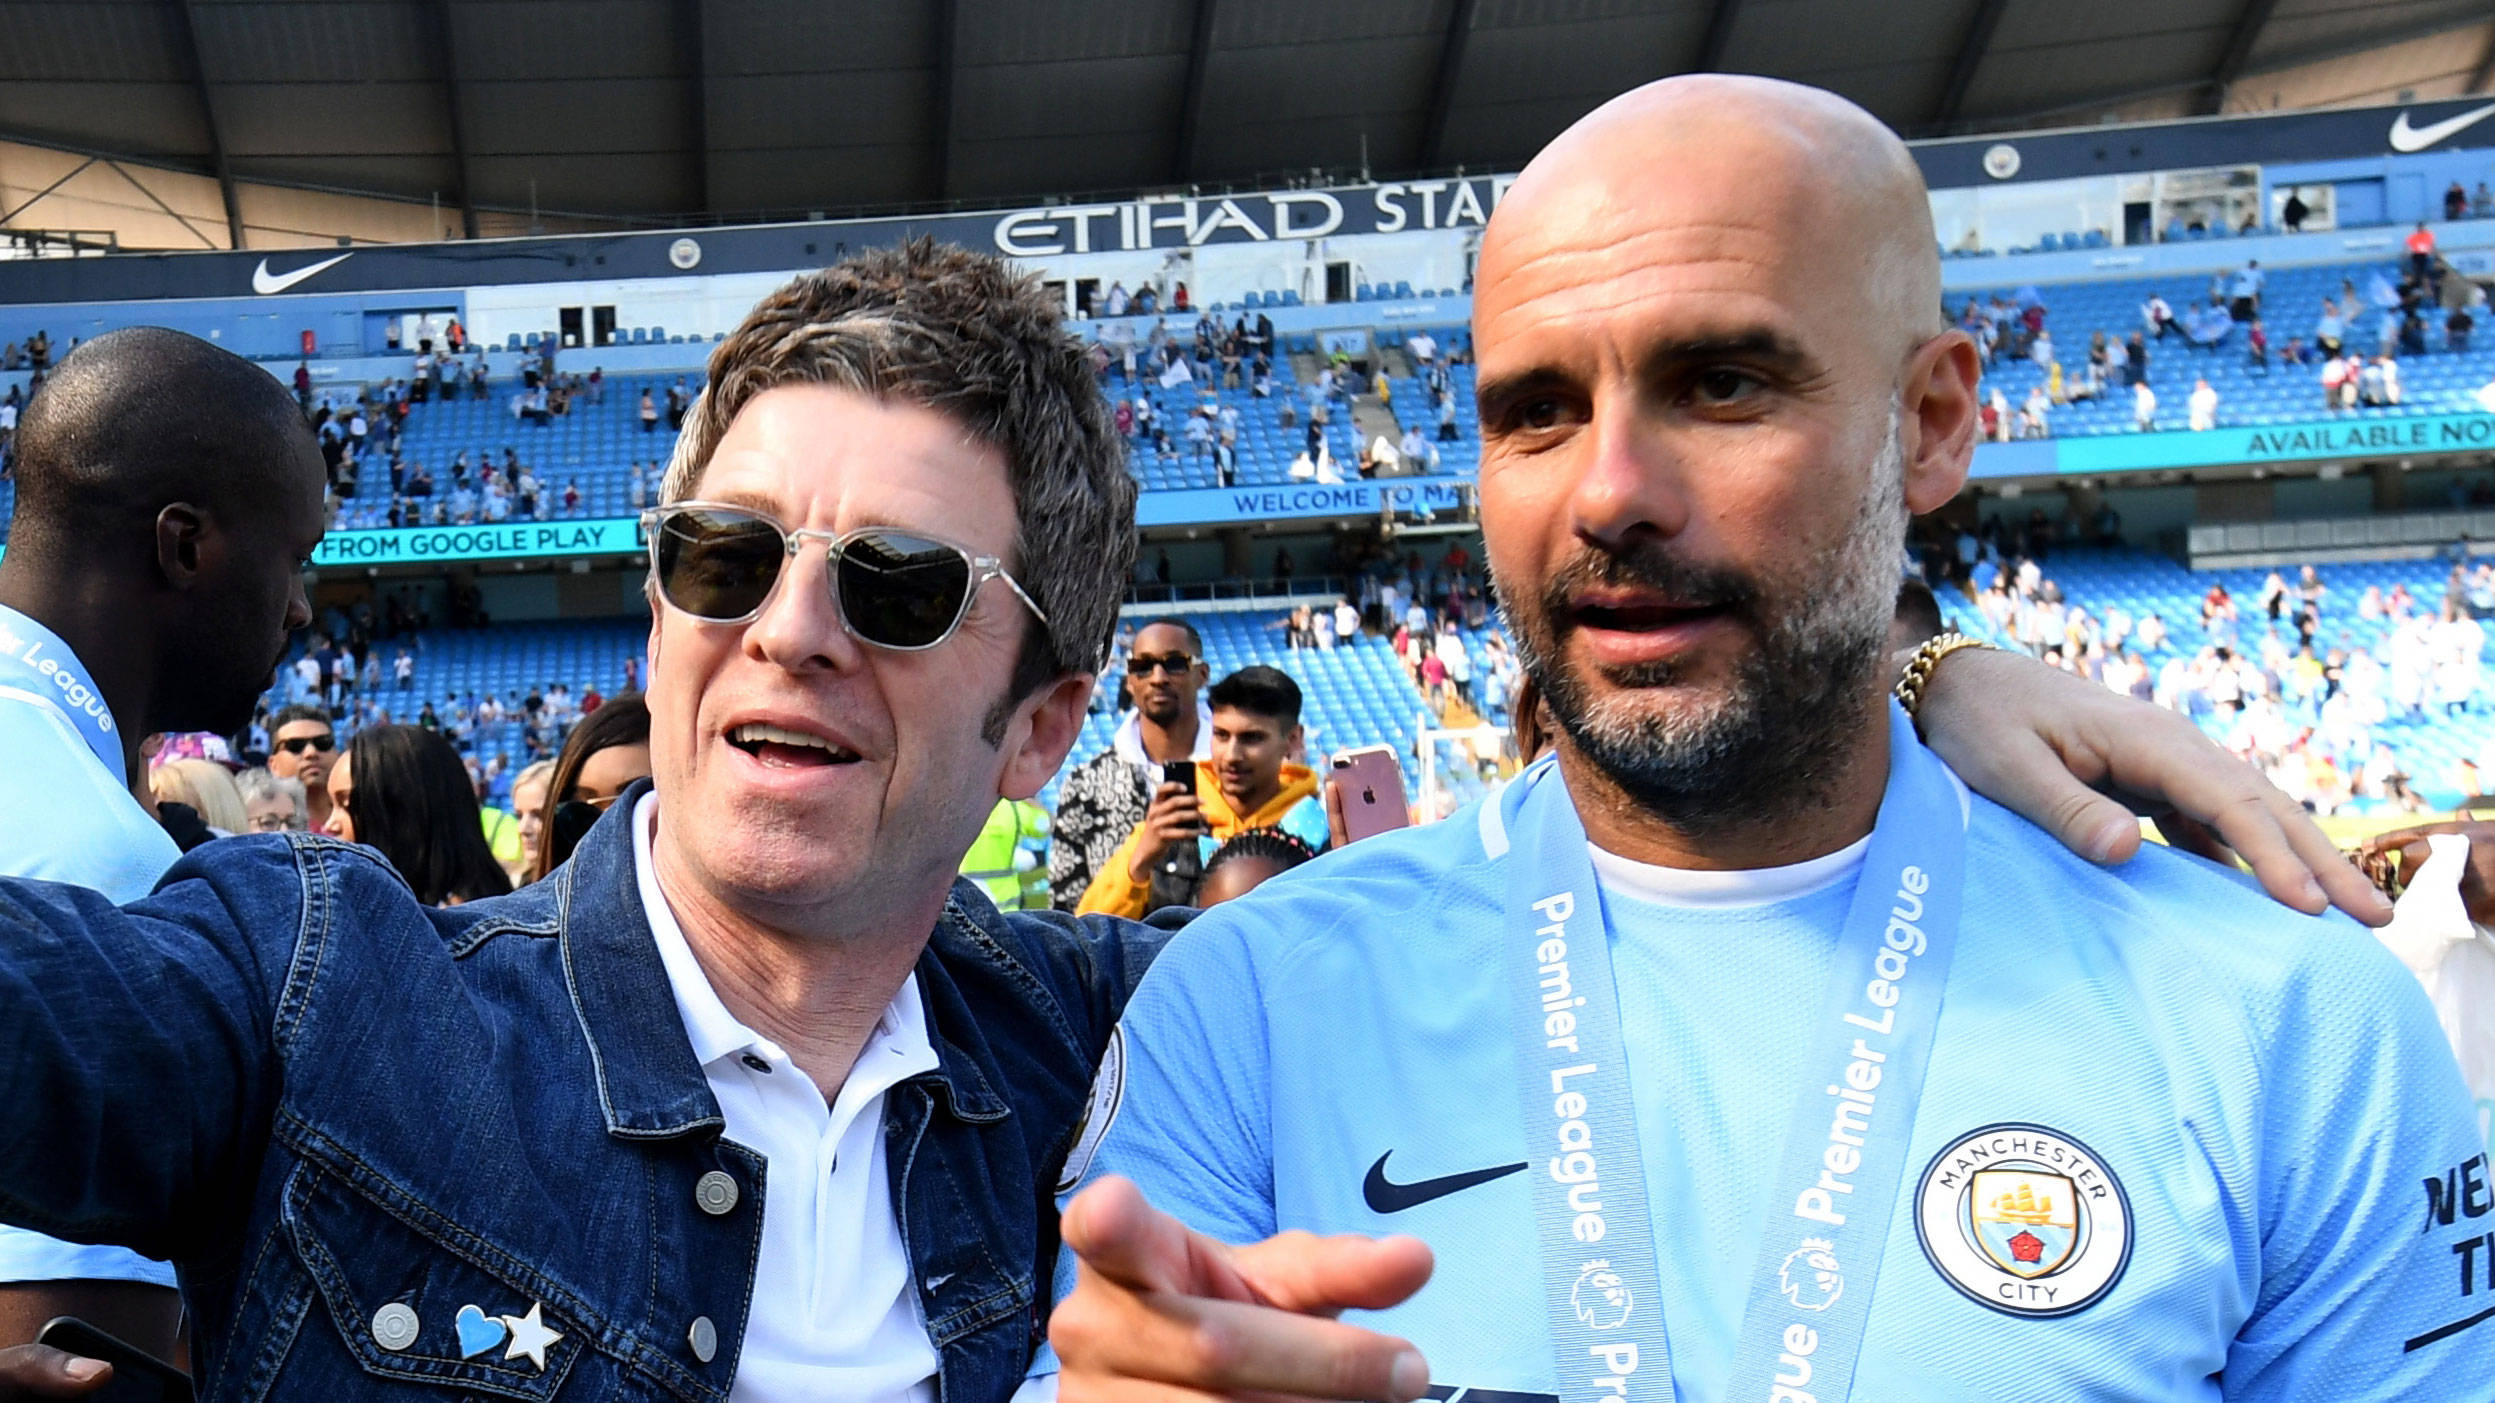 VIDEO: Noel Gallagher says Pep Guardiola reinvented football